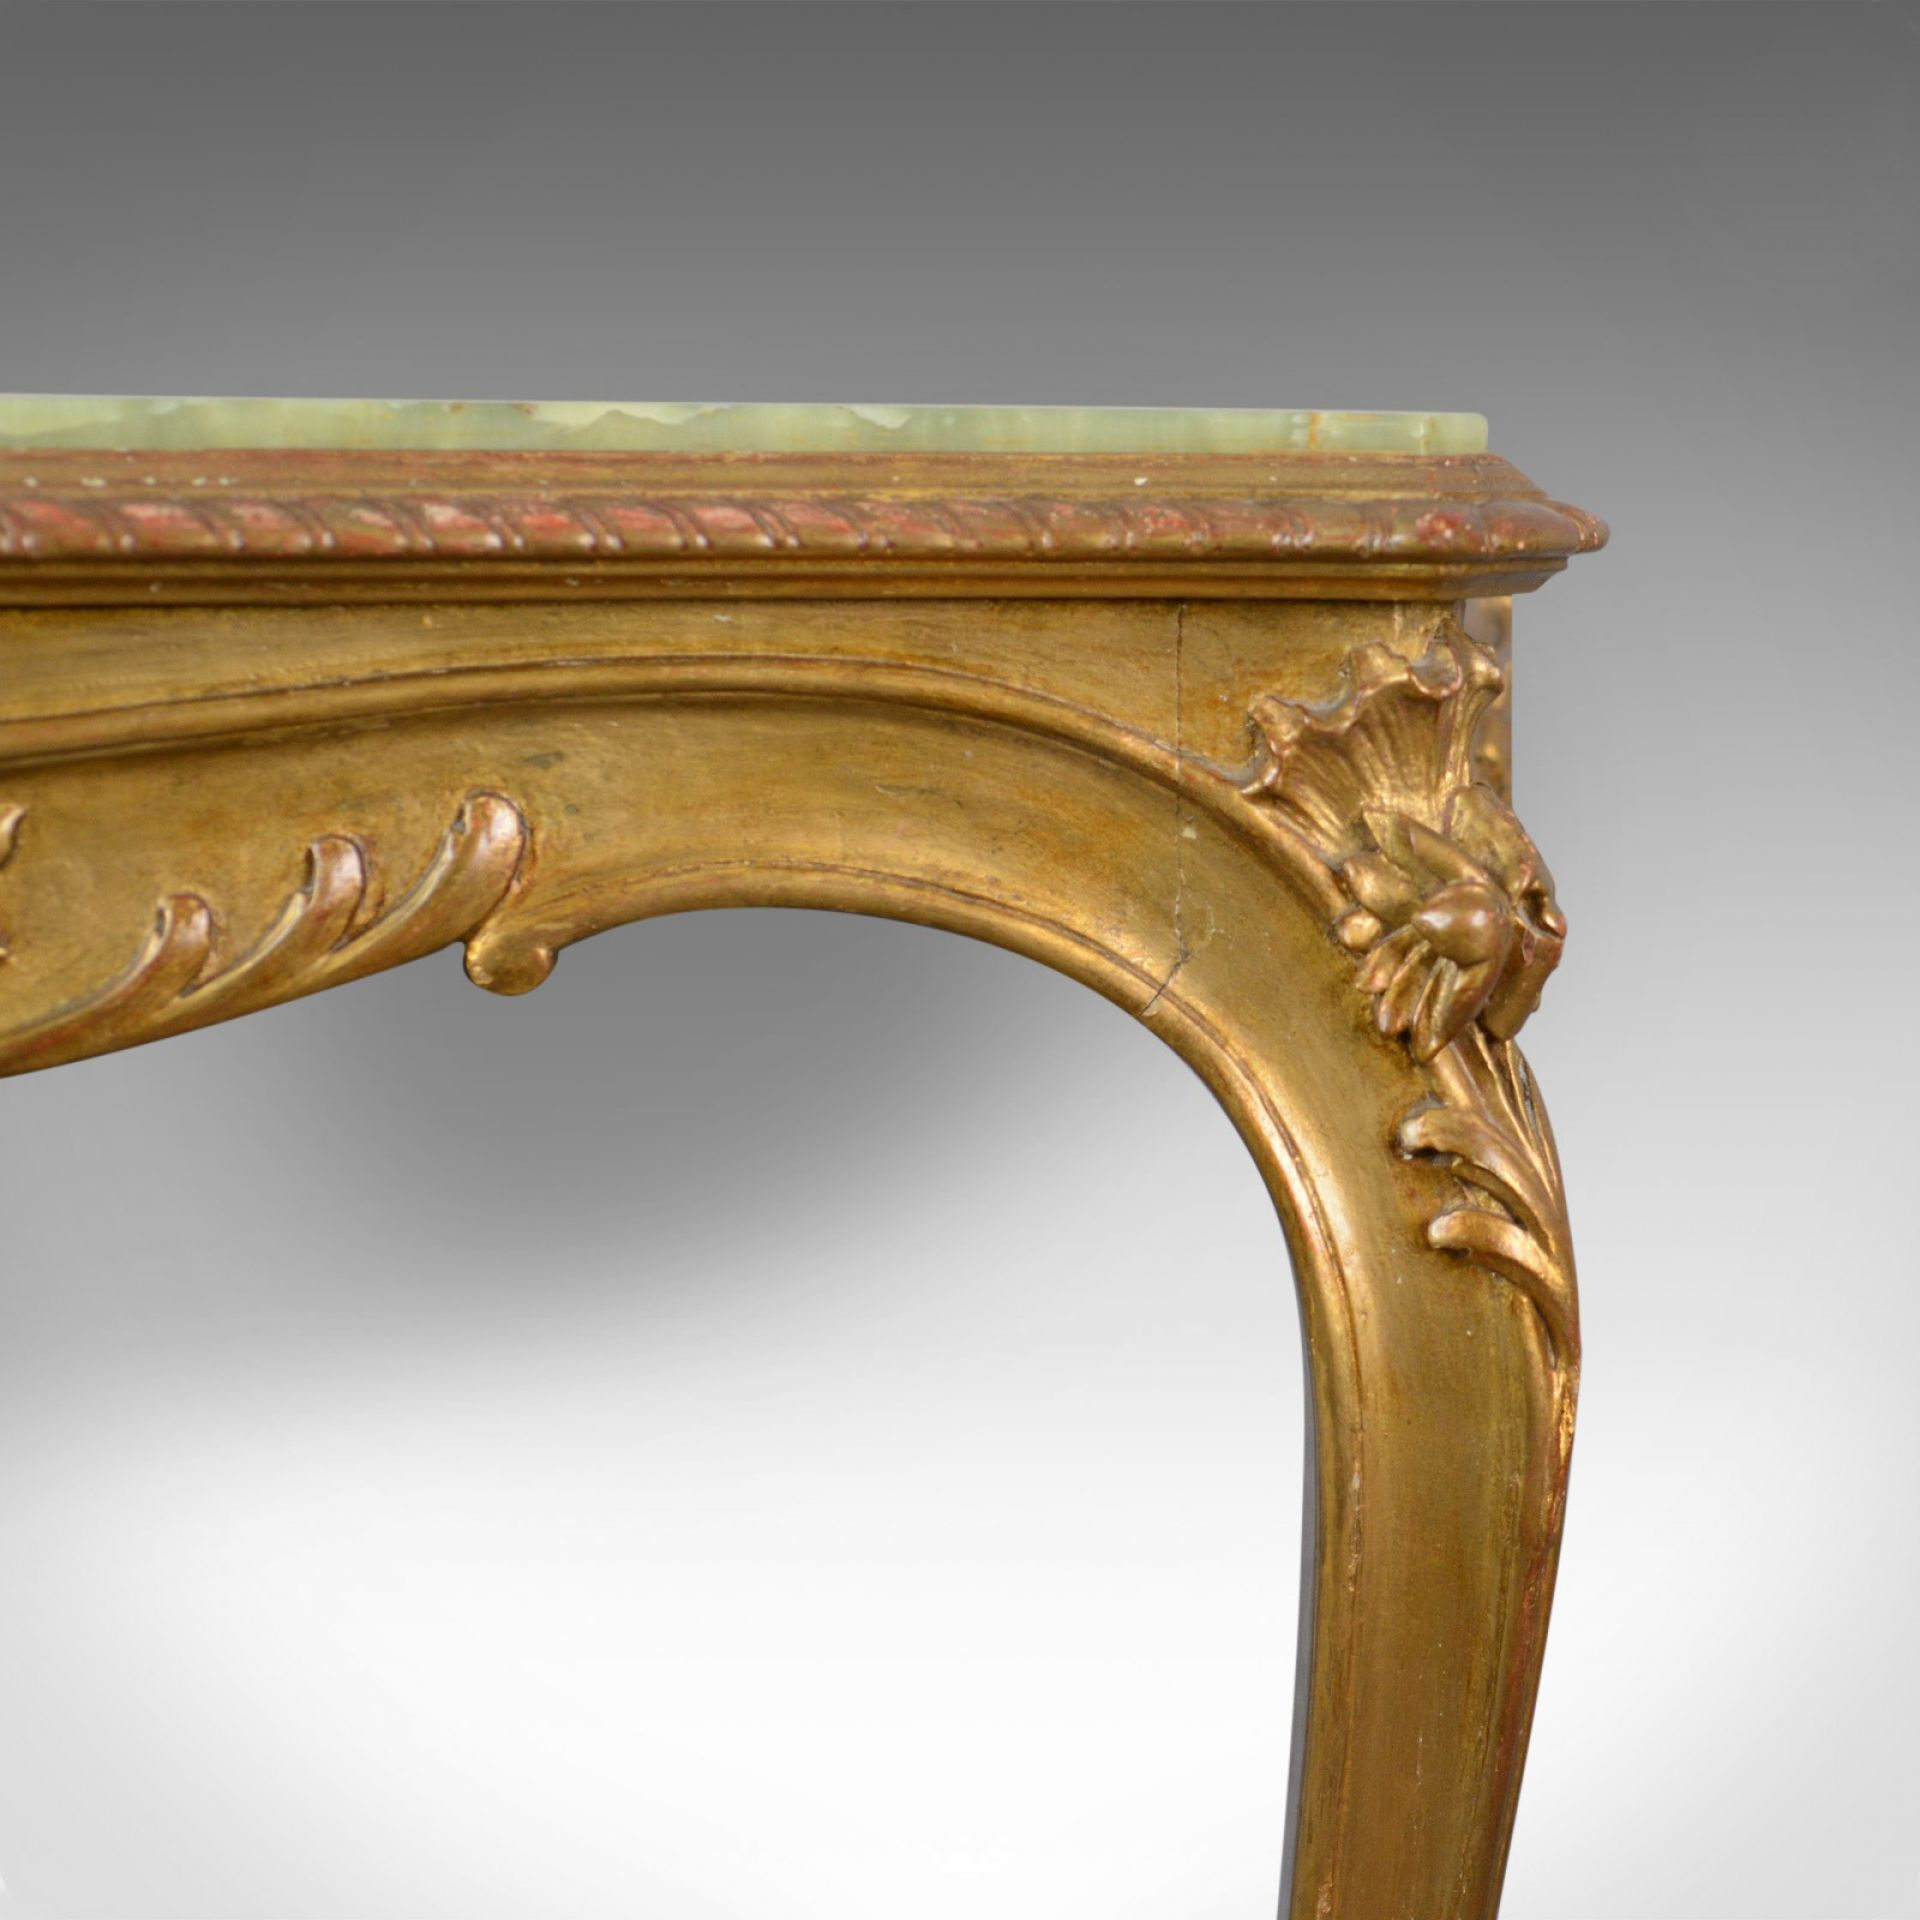 French Antique Console Table, Giltwood and Onyx, Classical Revival, Circa 1900